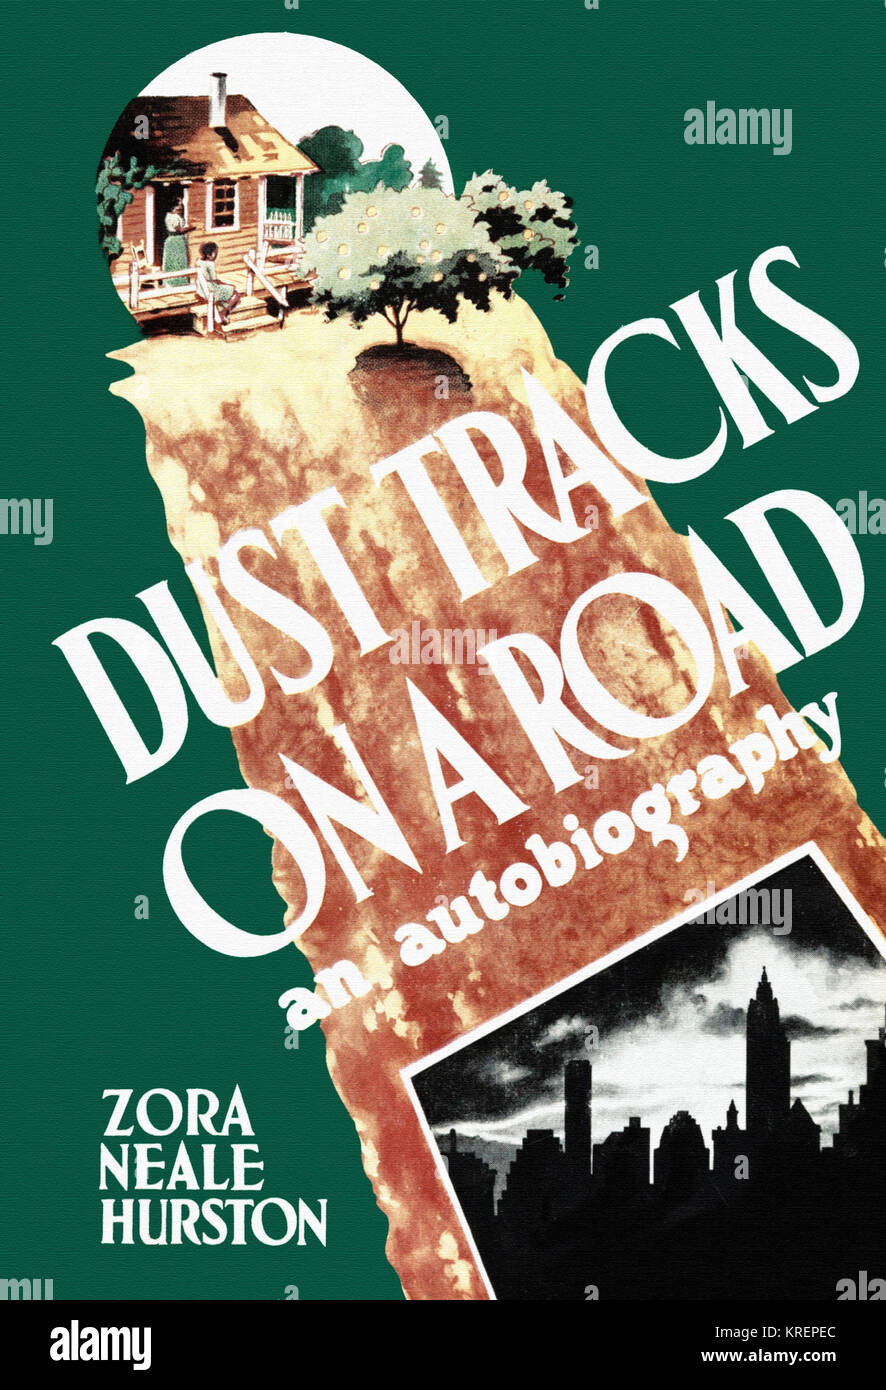 http://c7.alamy.com/comp/KREPEC/author-zora-neale-hurstons-novel-dust-tracks-on-a-road-an-autobiography-KREPEC.jpg